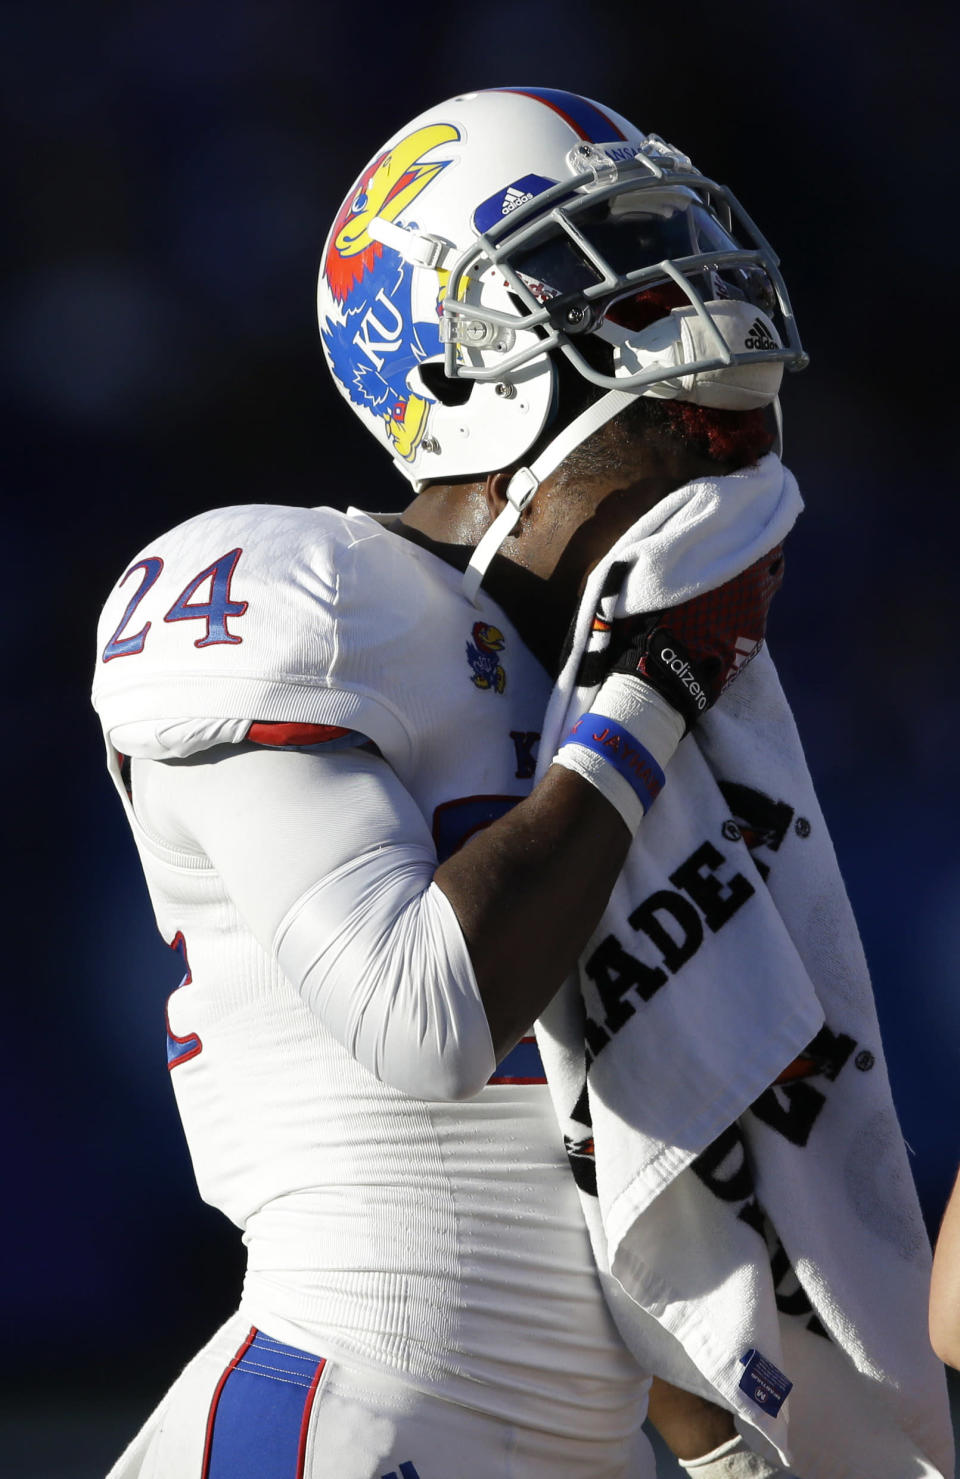 Kansas cornerback JaCorey Shepherd towels off during the first half of an NCAA college football game against Kansas State in Manhattan, Kan., Saturday, Nov. 29, 2014. (AP Photo/Orlin Wagner)